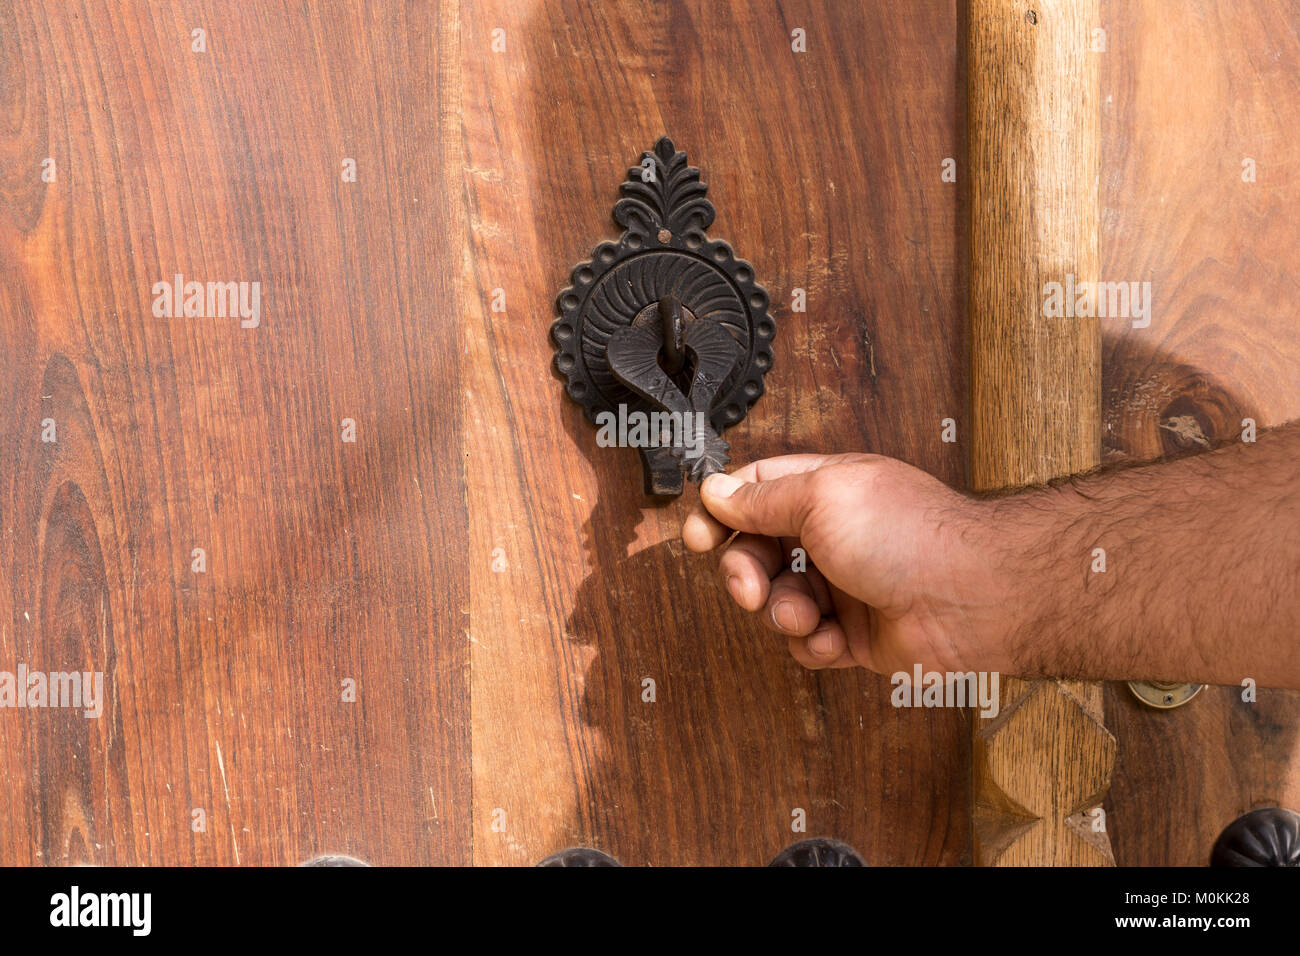 Wooden door with knocker types and decorated buttons, Masuleh village, Gilan province, Iran - Stock Image